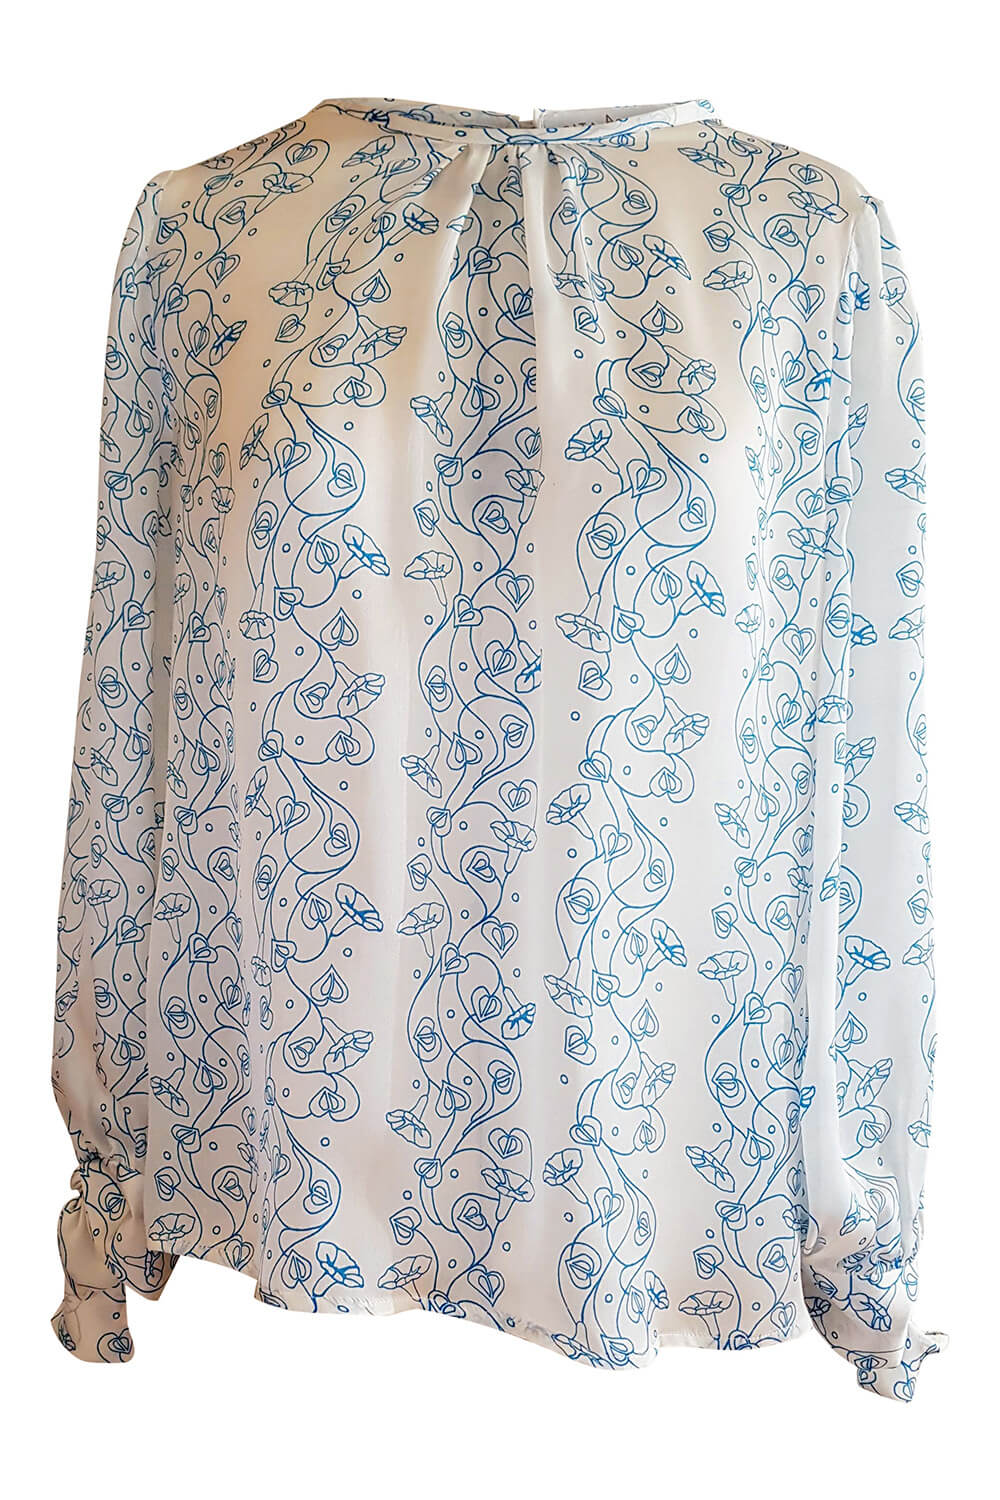 long sleeved blouse GRETA in floral printed white and blue silk satin